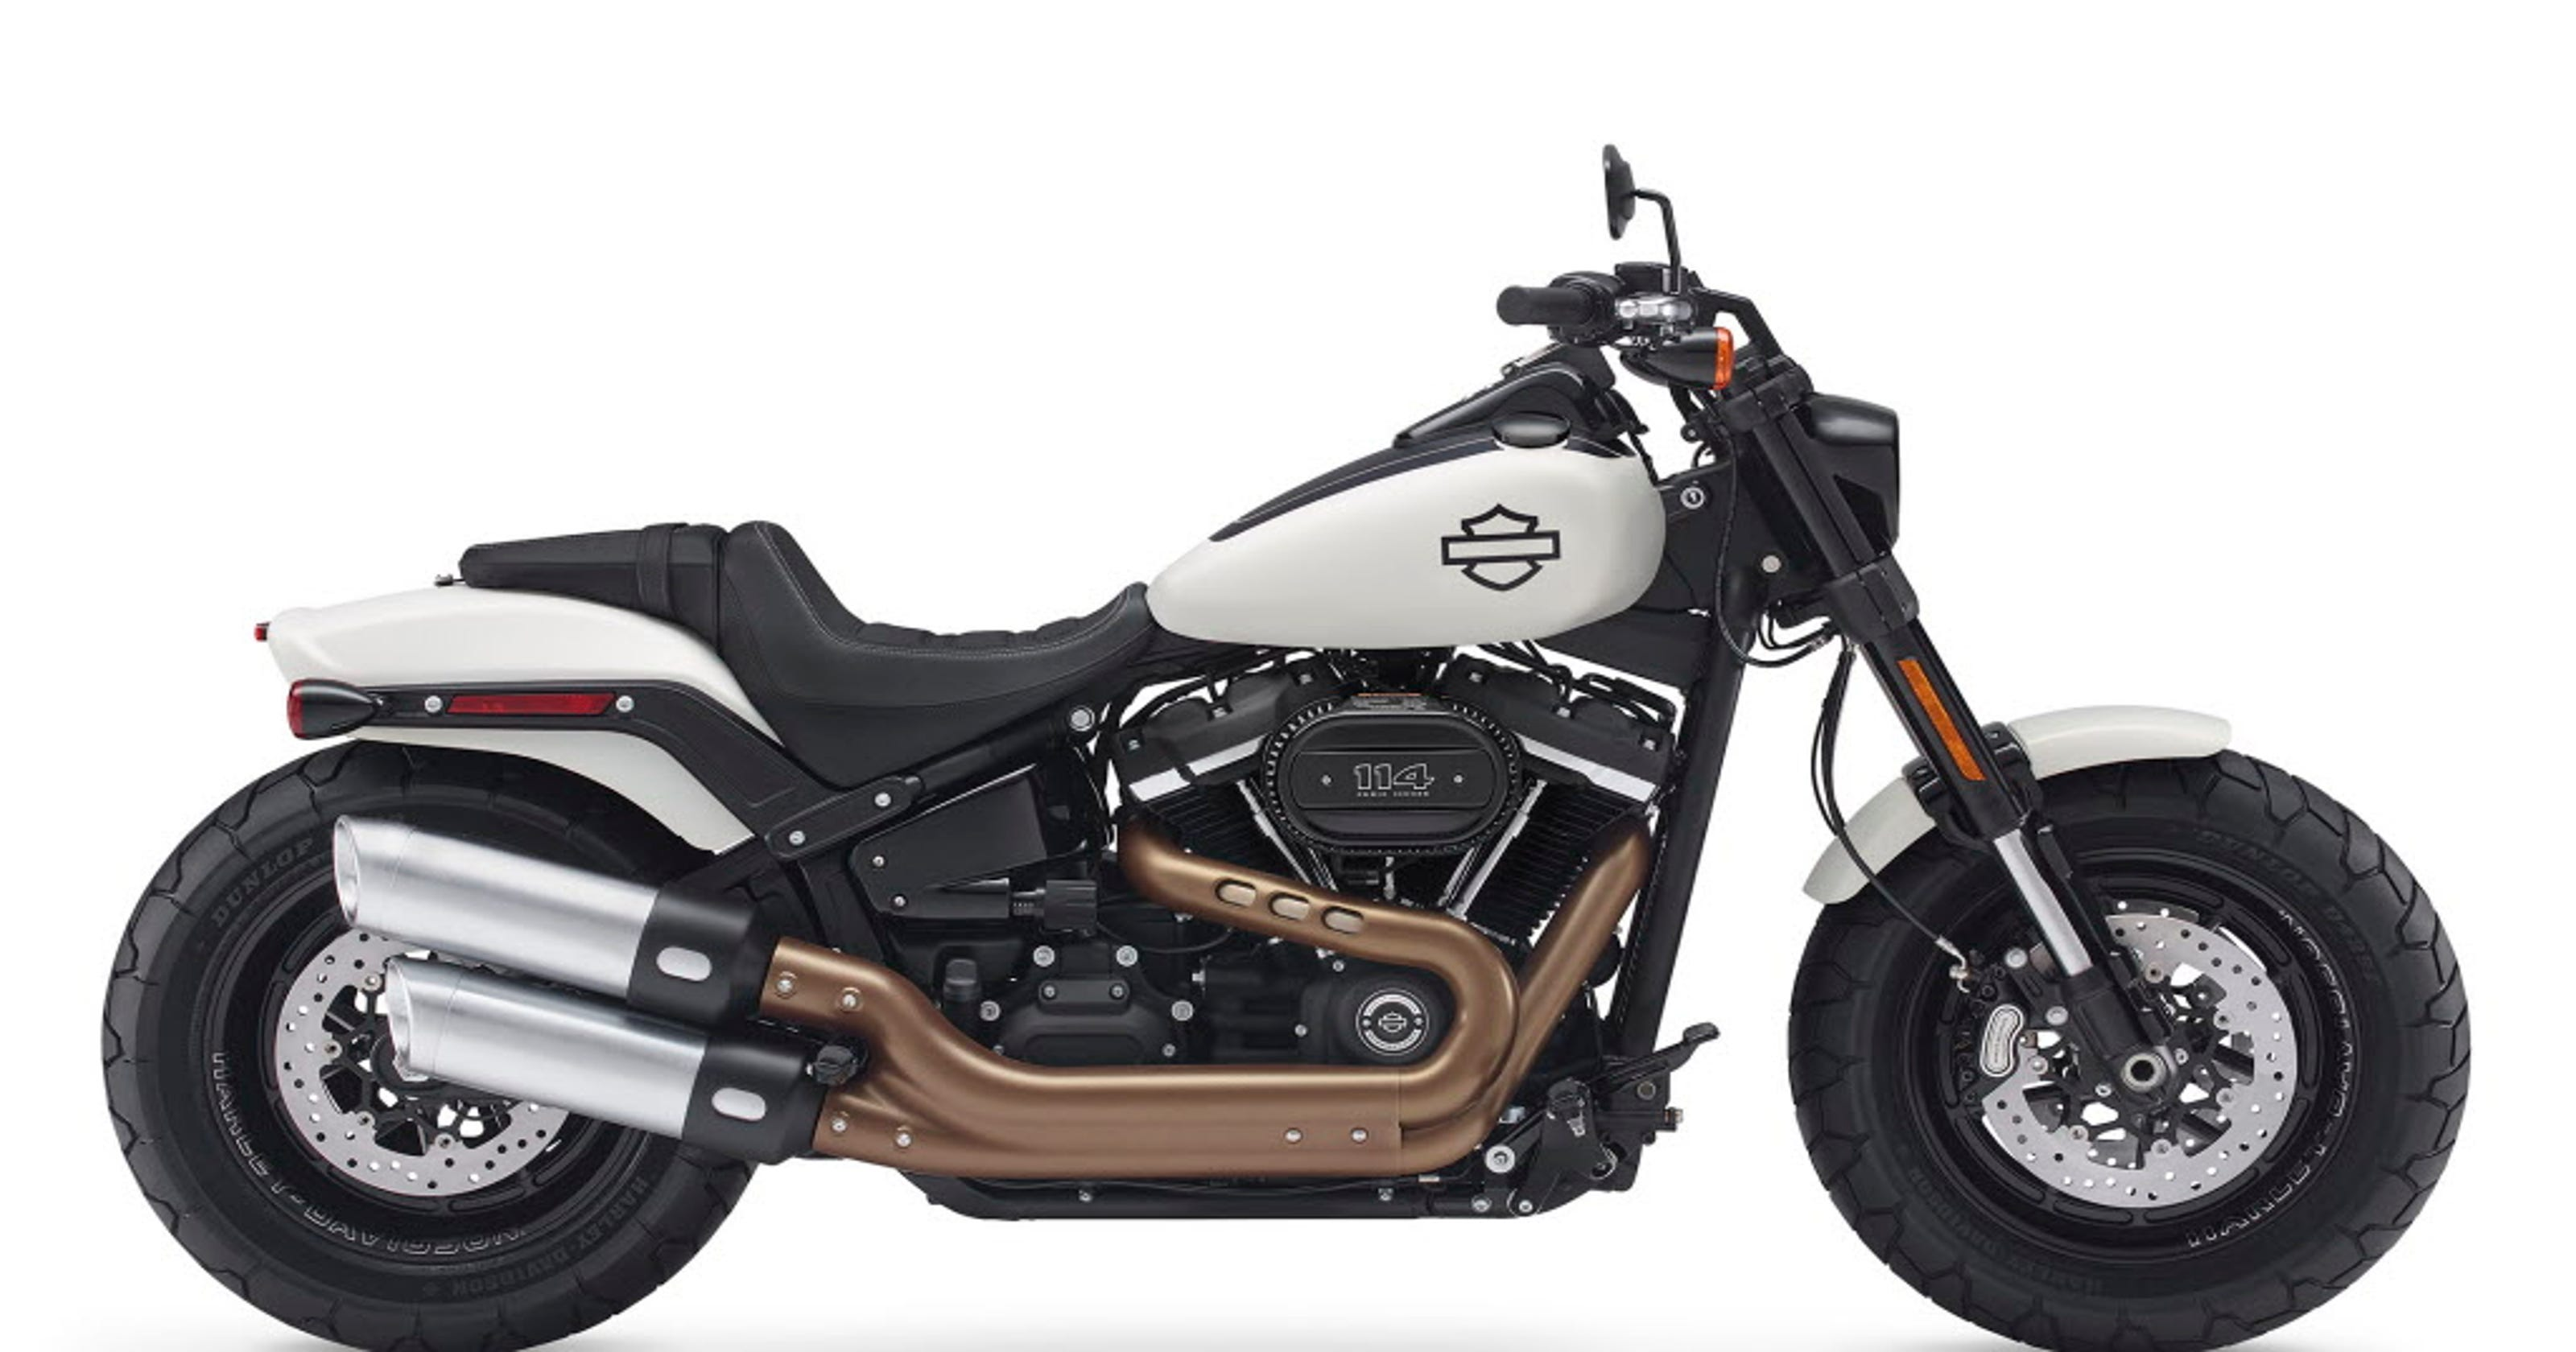 Harley: New bikes are largest product project in Harley-Davidson history